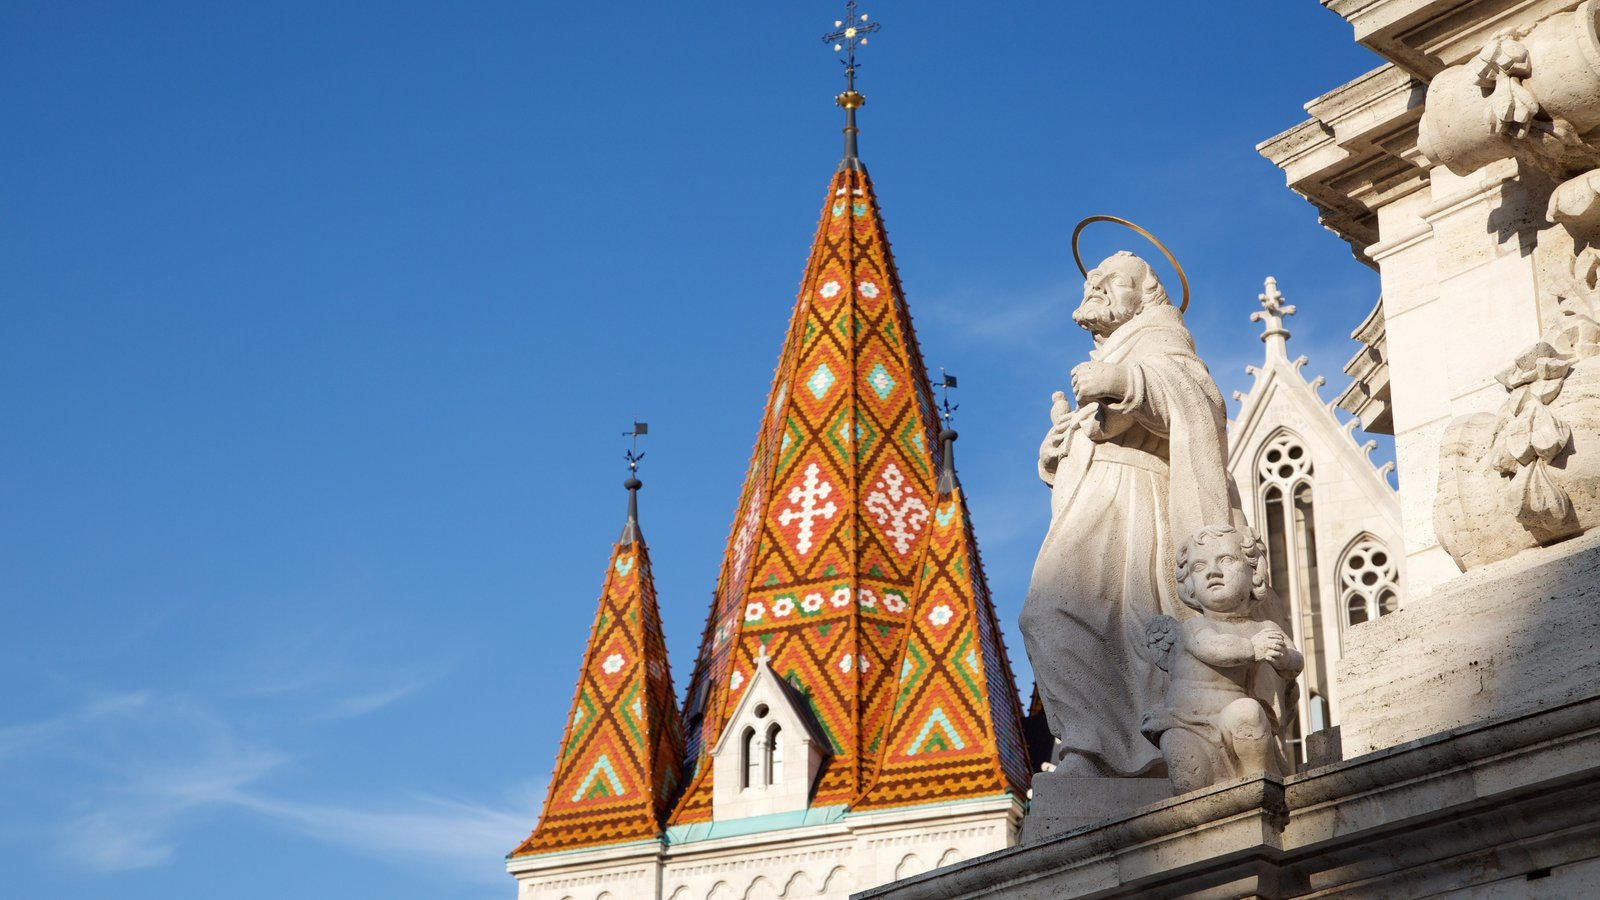 Matthias Church showing a church or cathedral, heritage architecture and a statue or sculpture